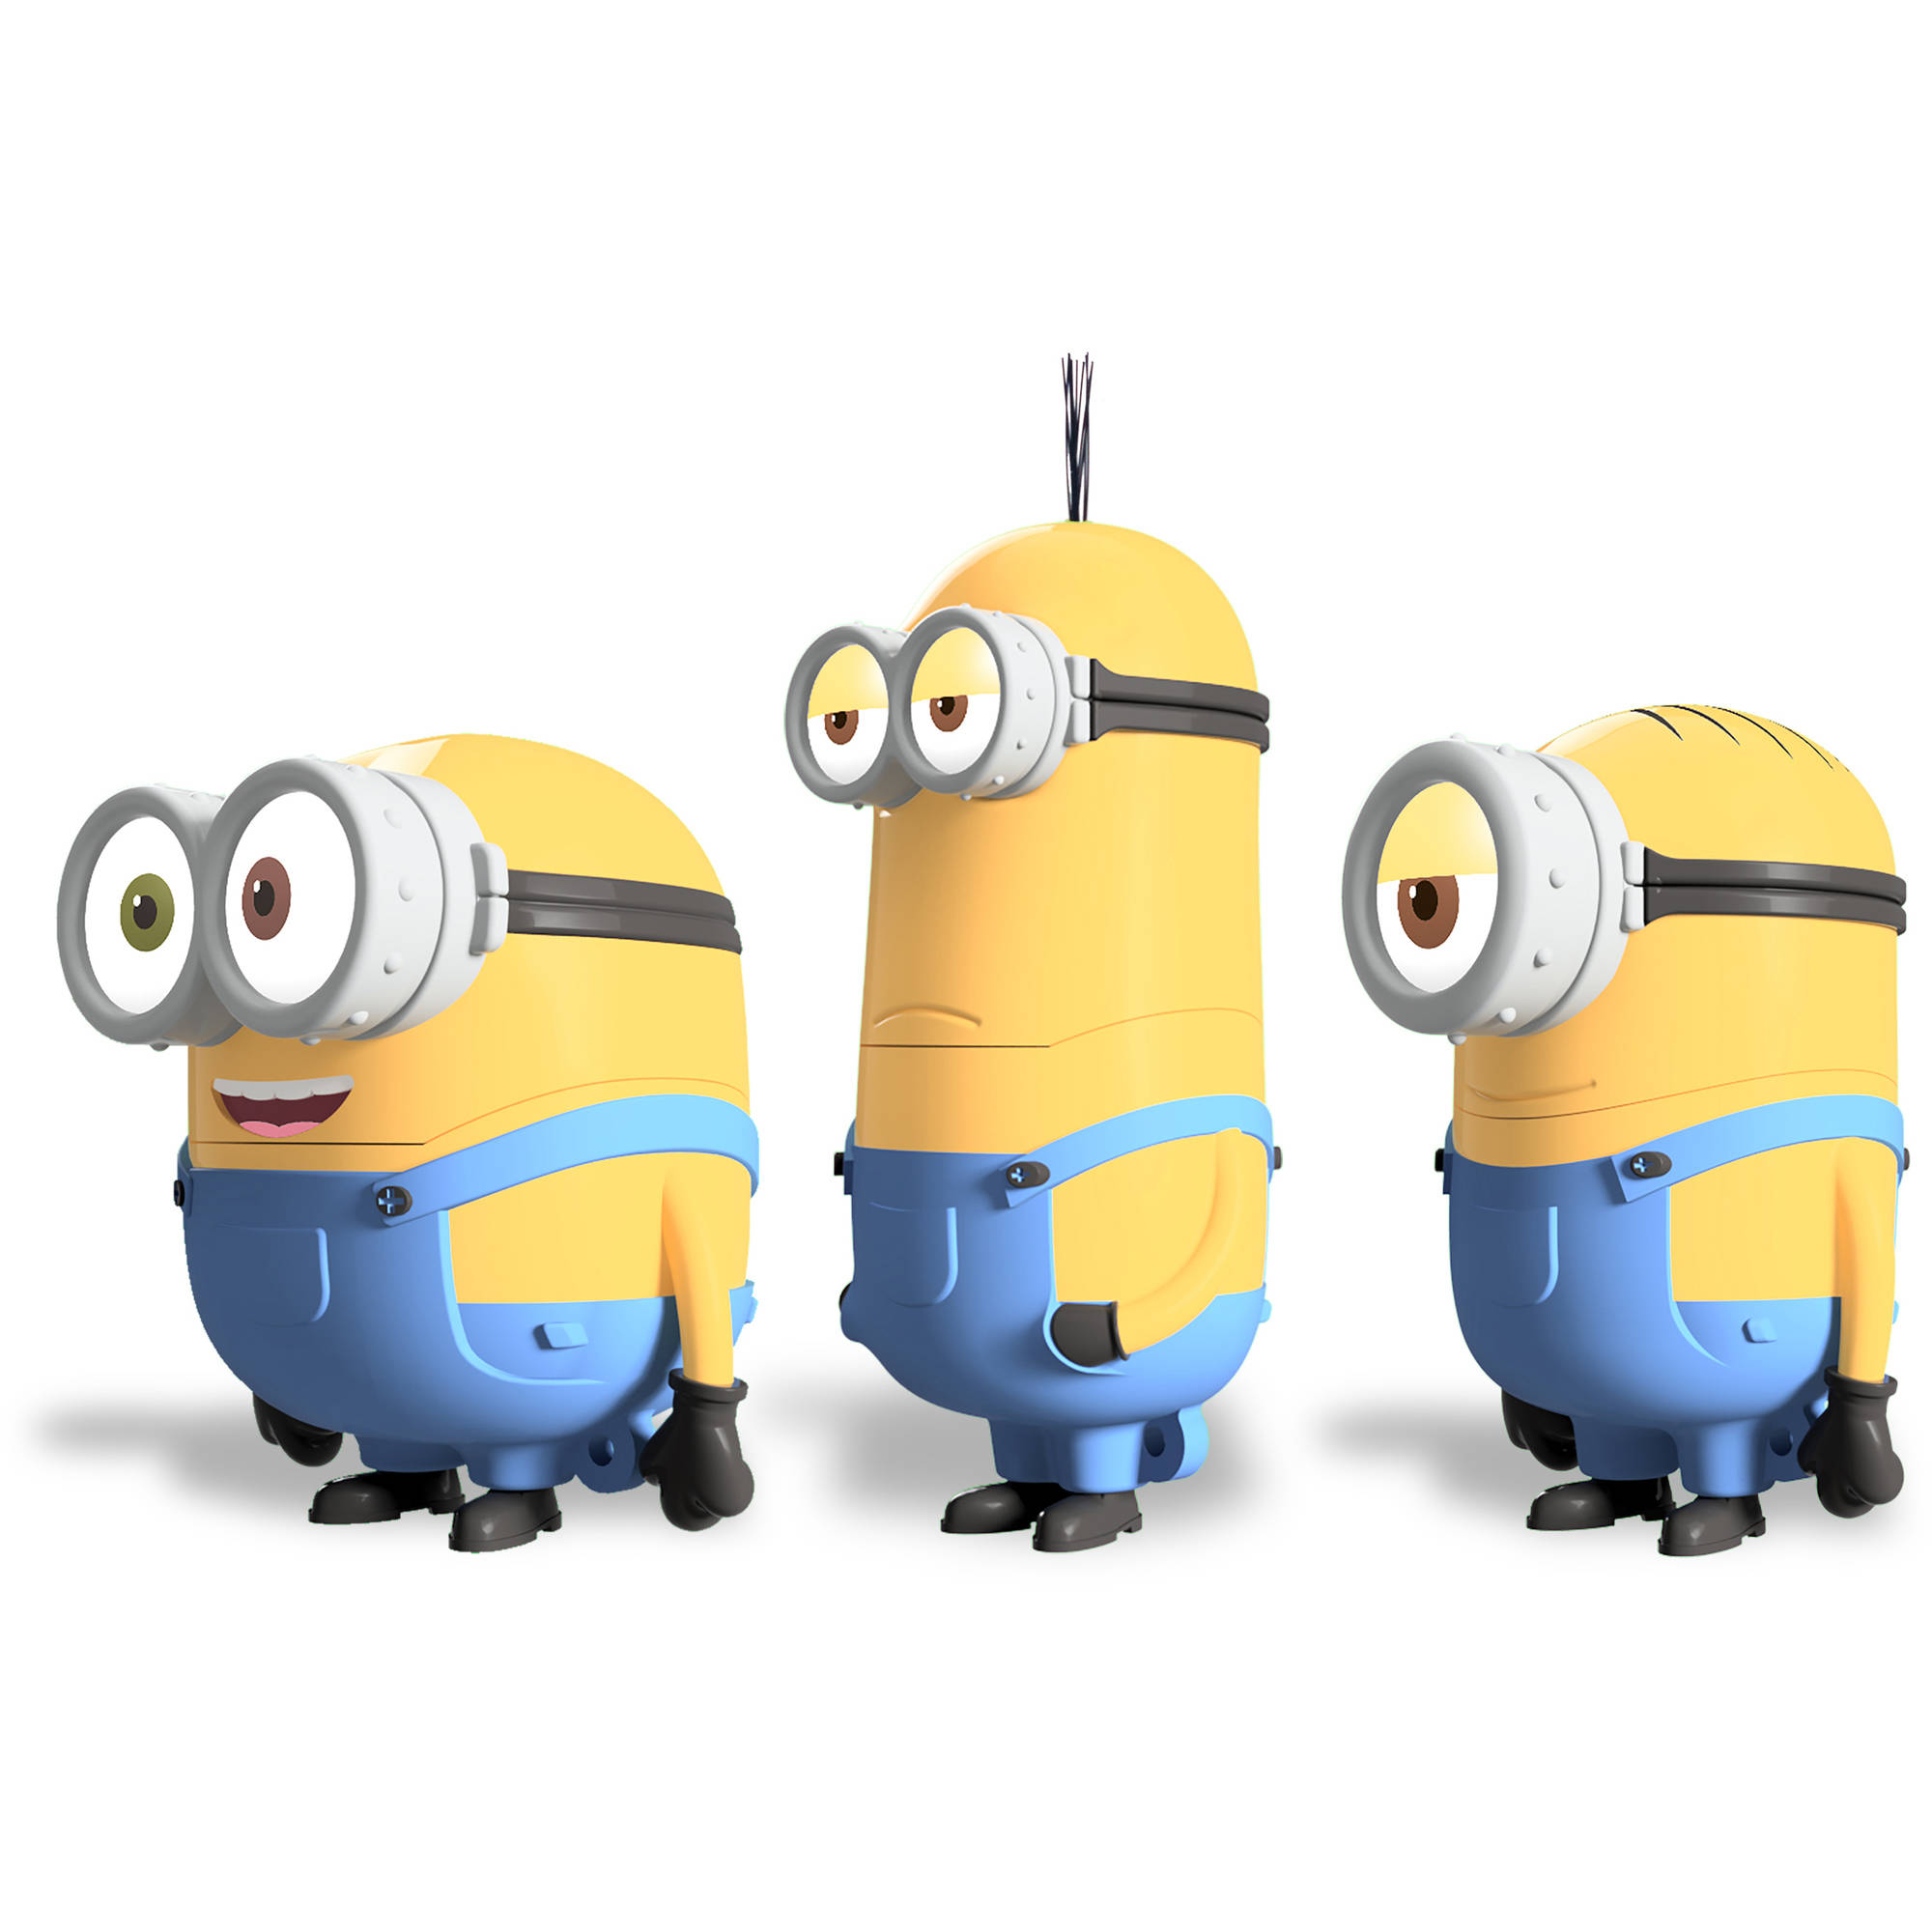 EP Minions 16GB USB Flash Drive: Kevin, Stuart, Bob, 3-Pack